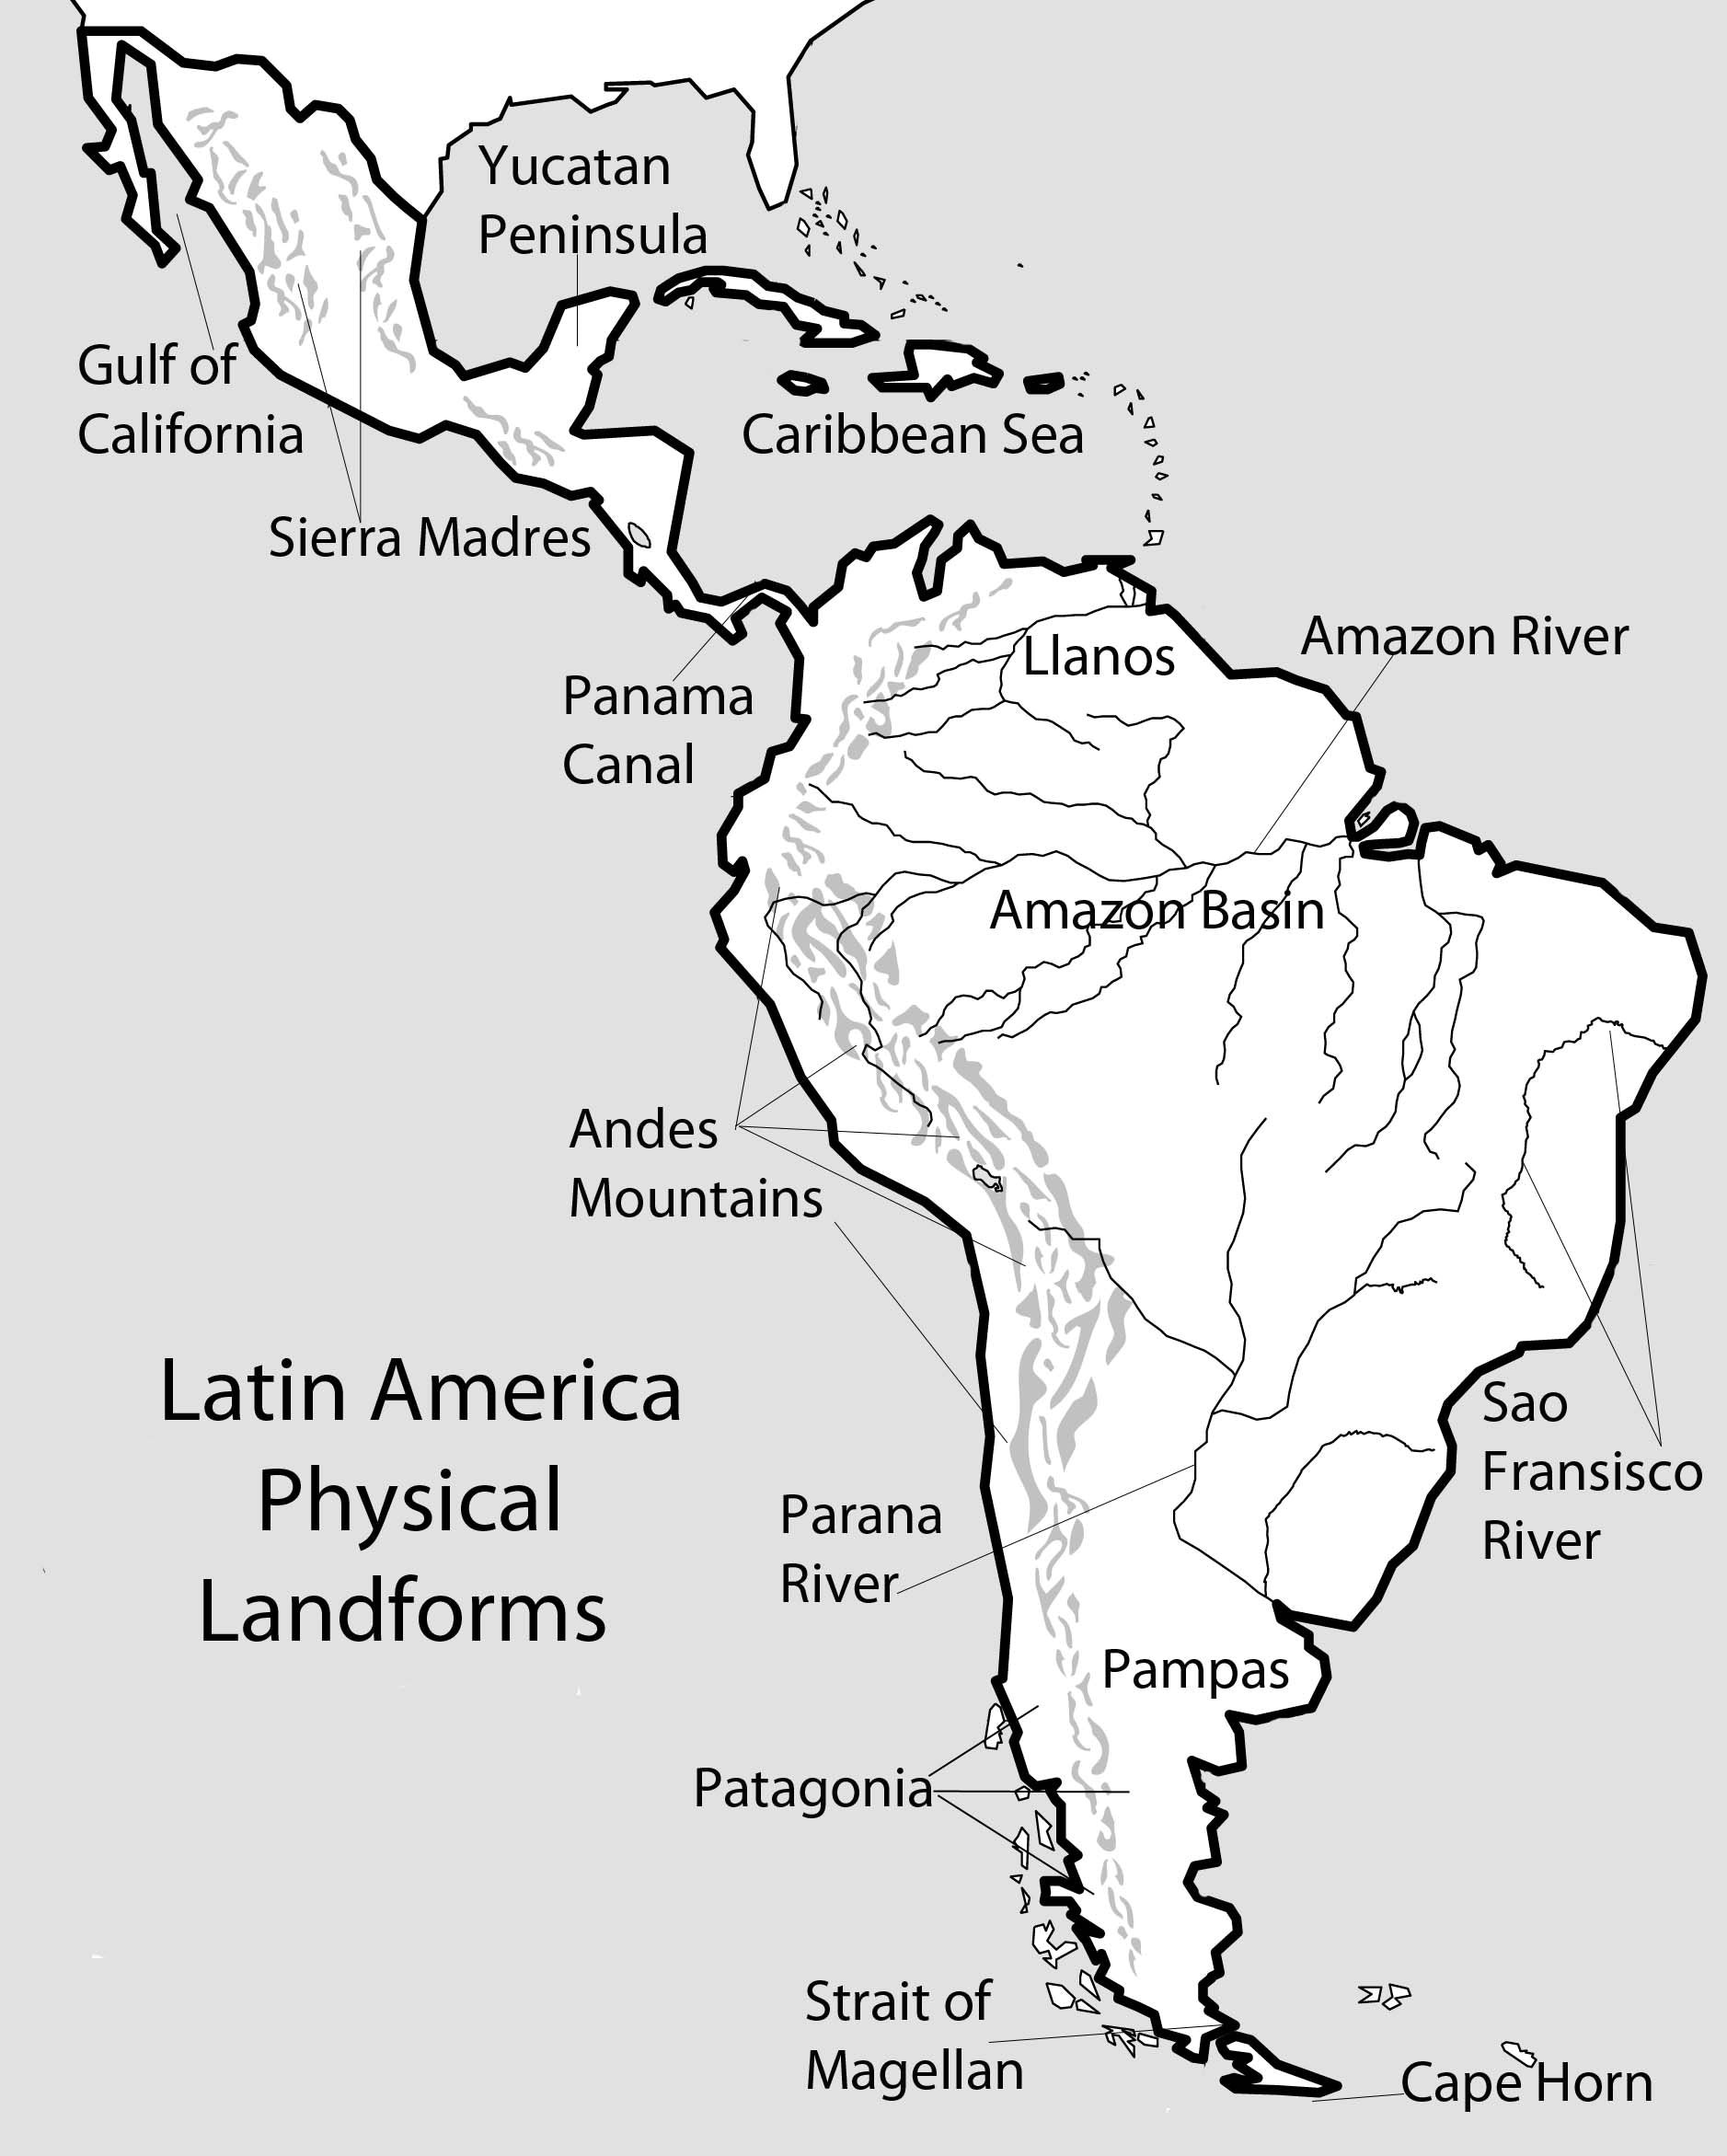 North America Map Drawing at GetDrawings.com | Free for ... on blank map of central america, blank outline of south america, blank physical map of latin america, blank map of latin american countries, blank map of north america, blank political map of america, blank map central south aerica, blank map of caribbean countries,